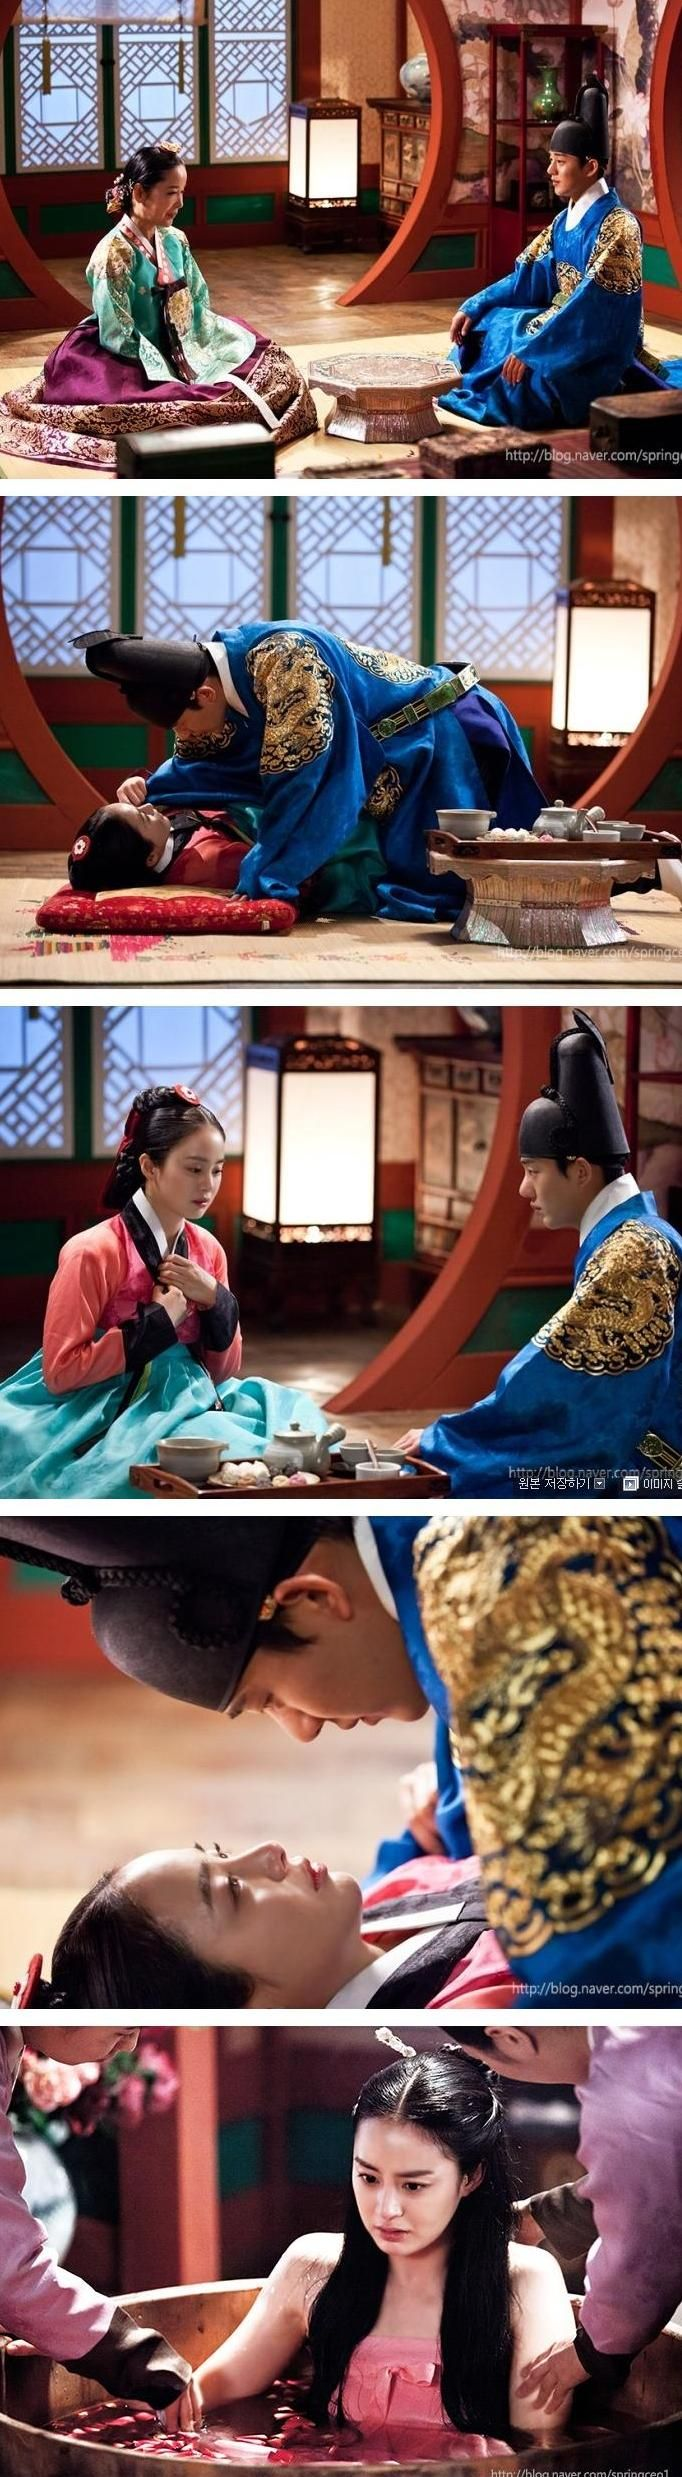 Jang Ok-jeong (장옥정) Love or Lust, there is only a thin line between them or not ?